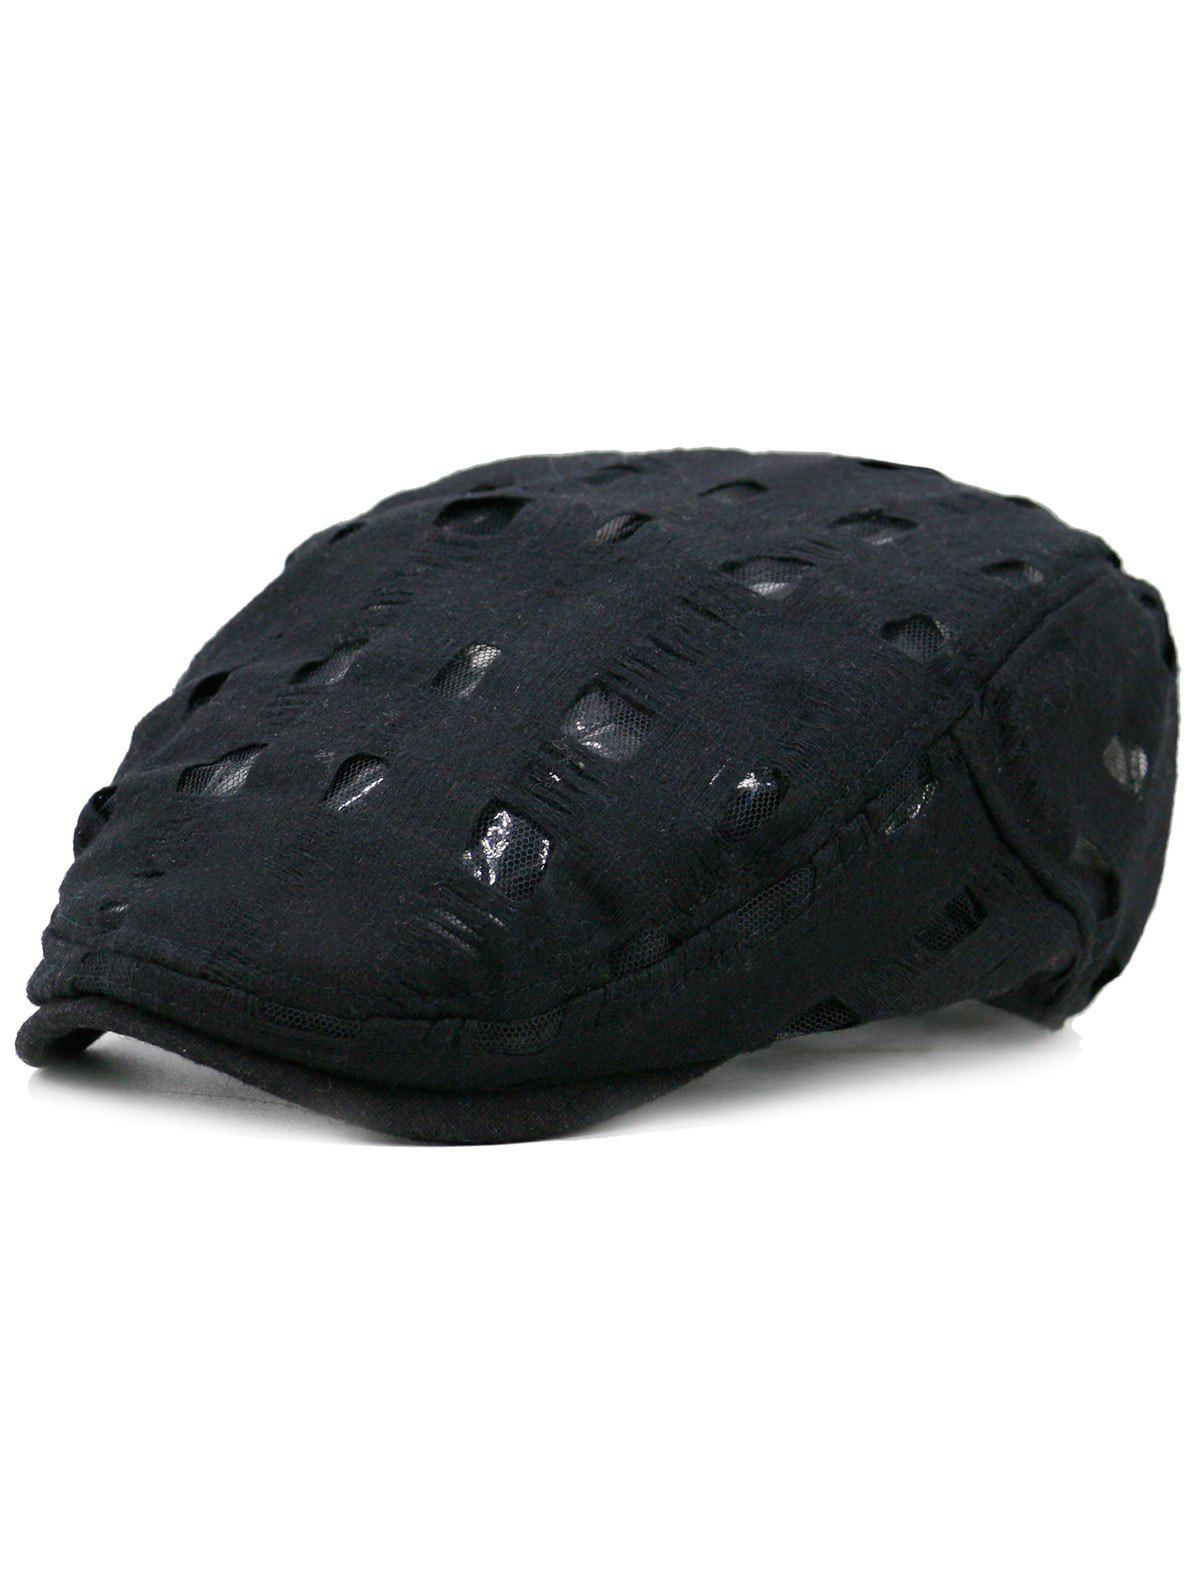 Unique Hollow Hole Pattern Cabbie Hat - BLACK